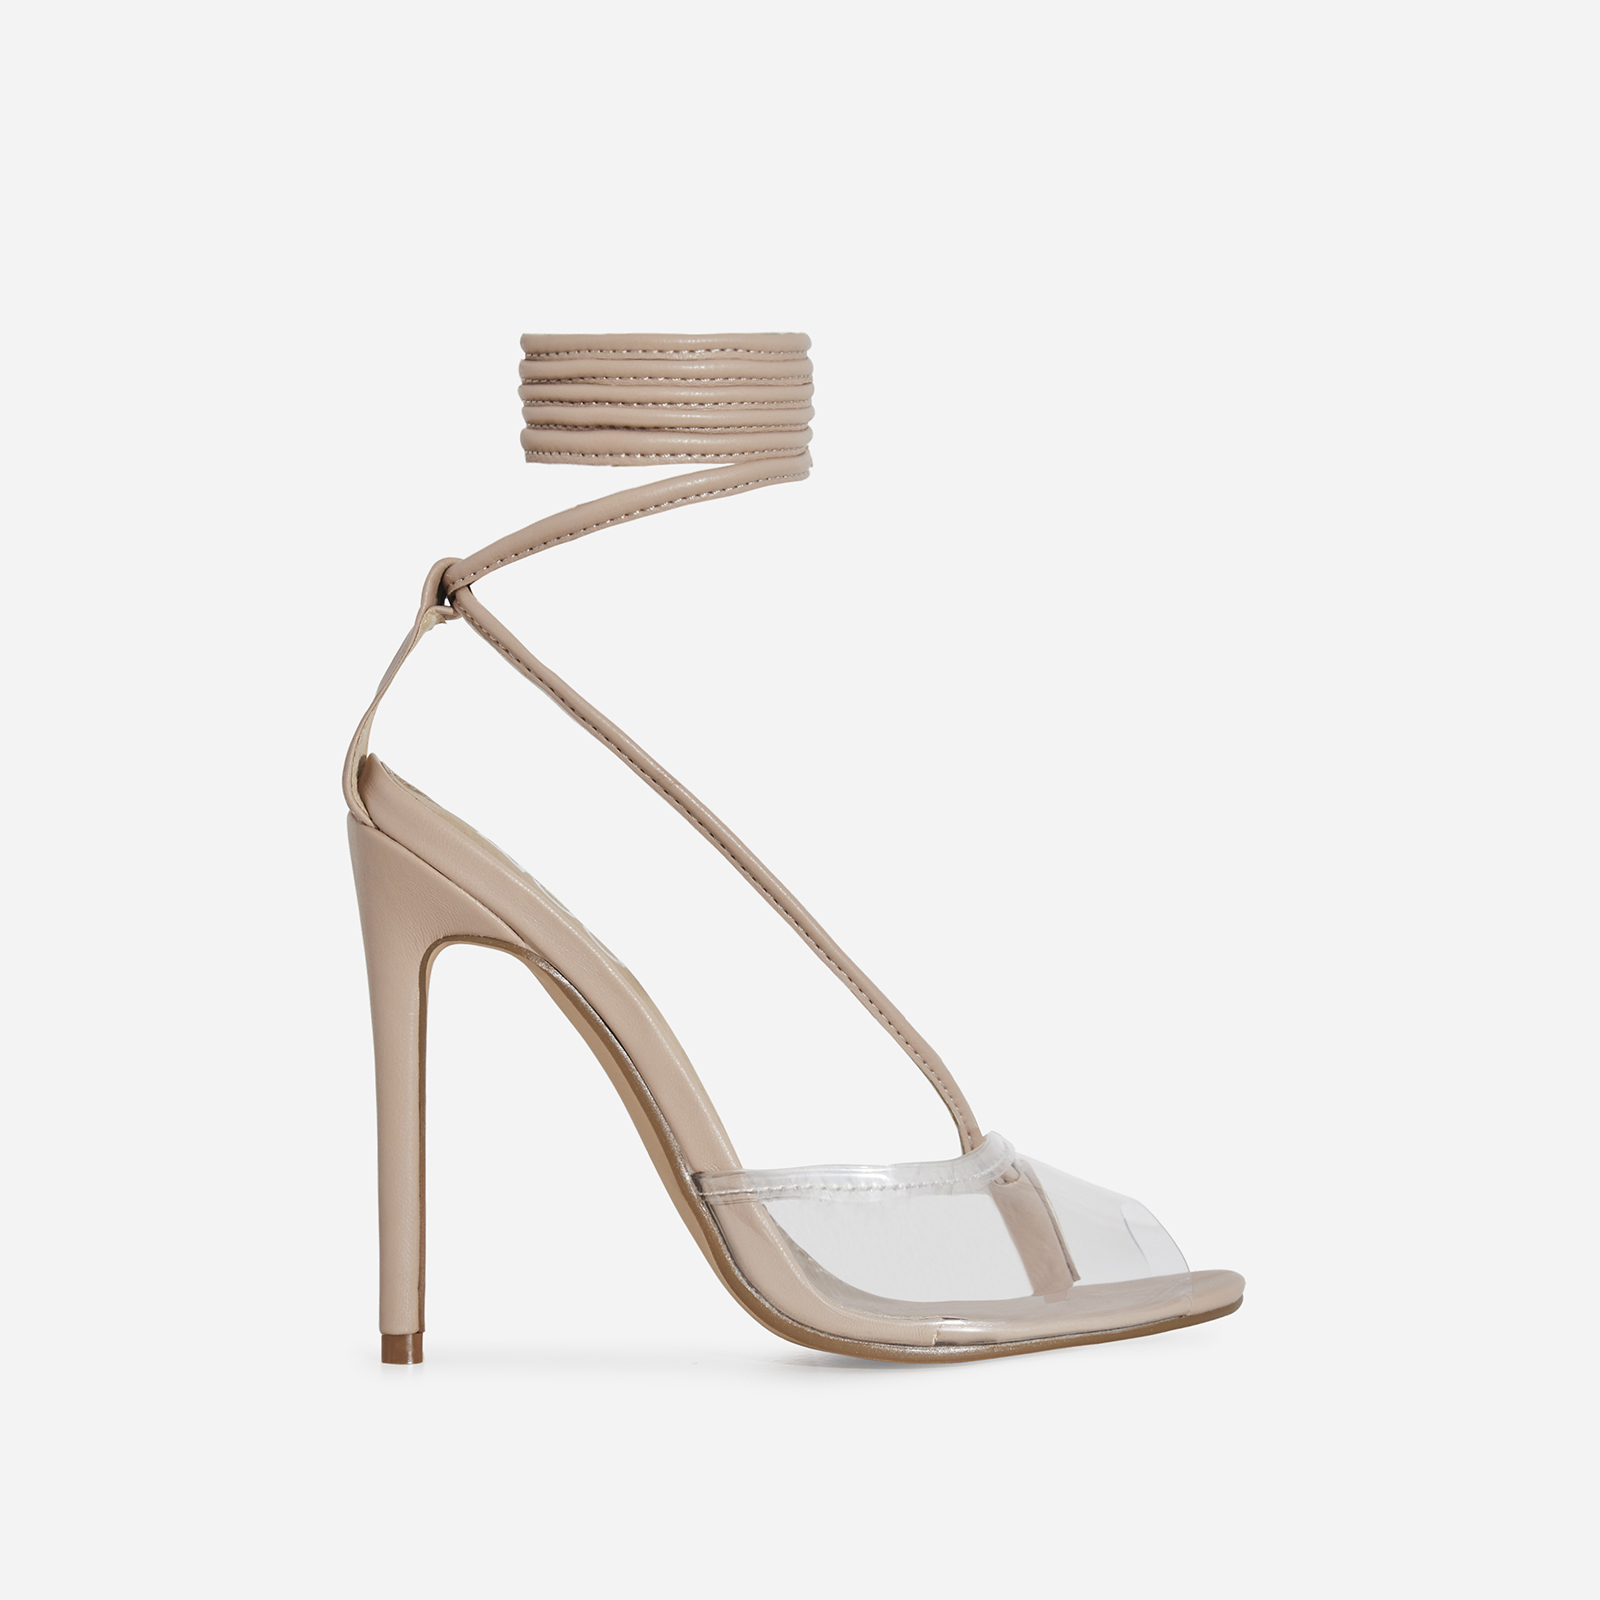 Tinder Lace Up Perspex Heel In Nude Faux Leather